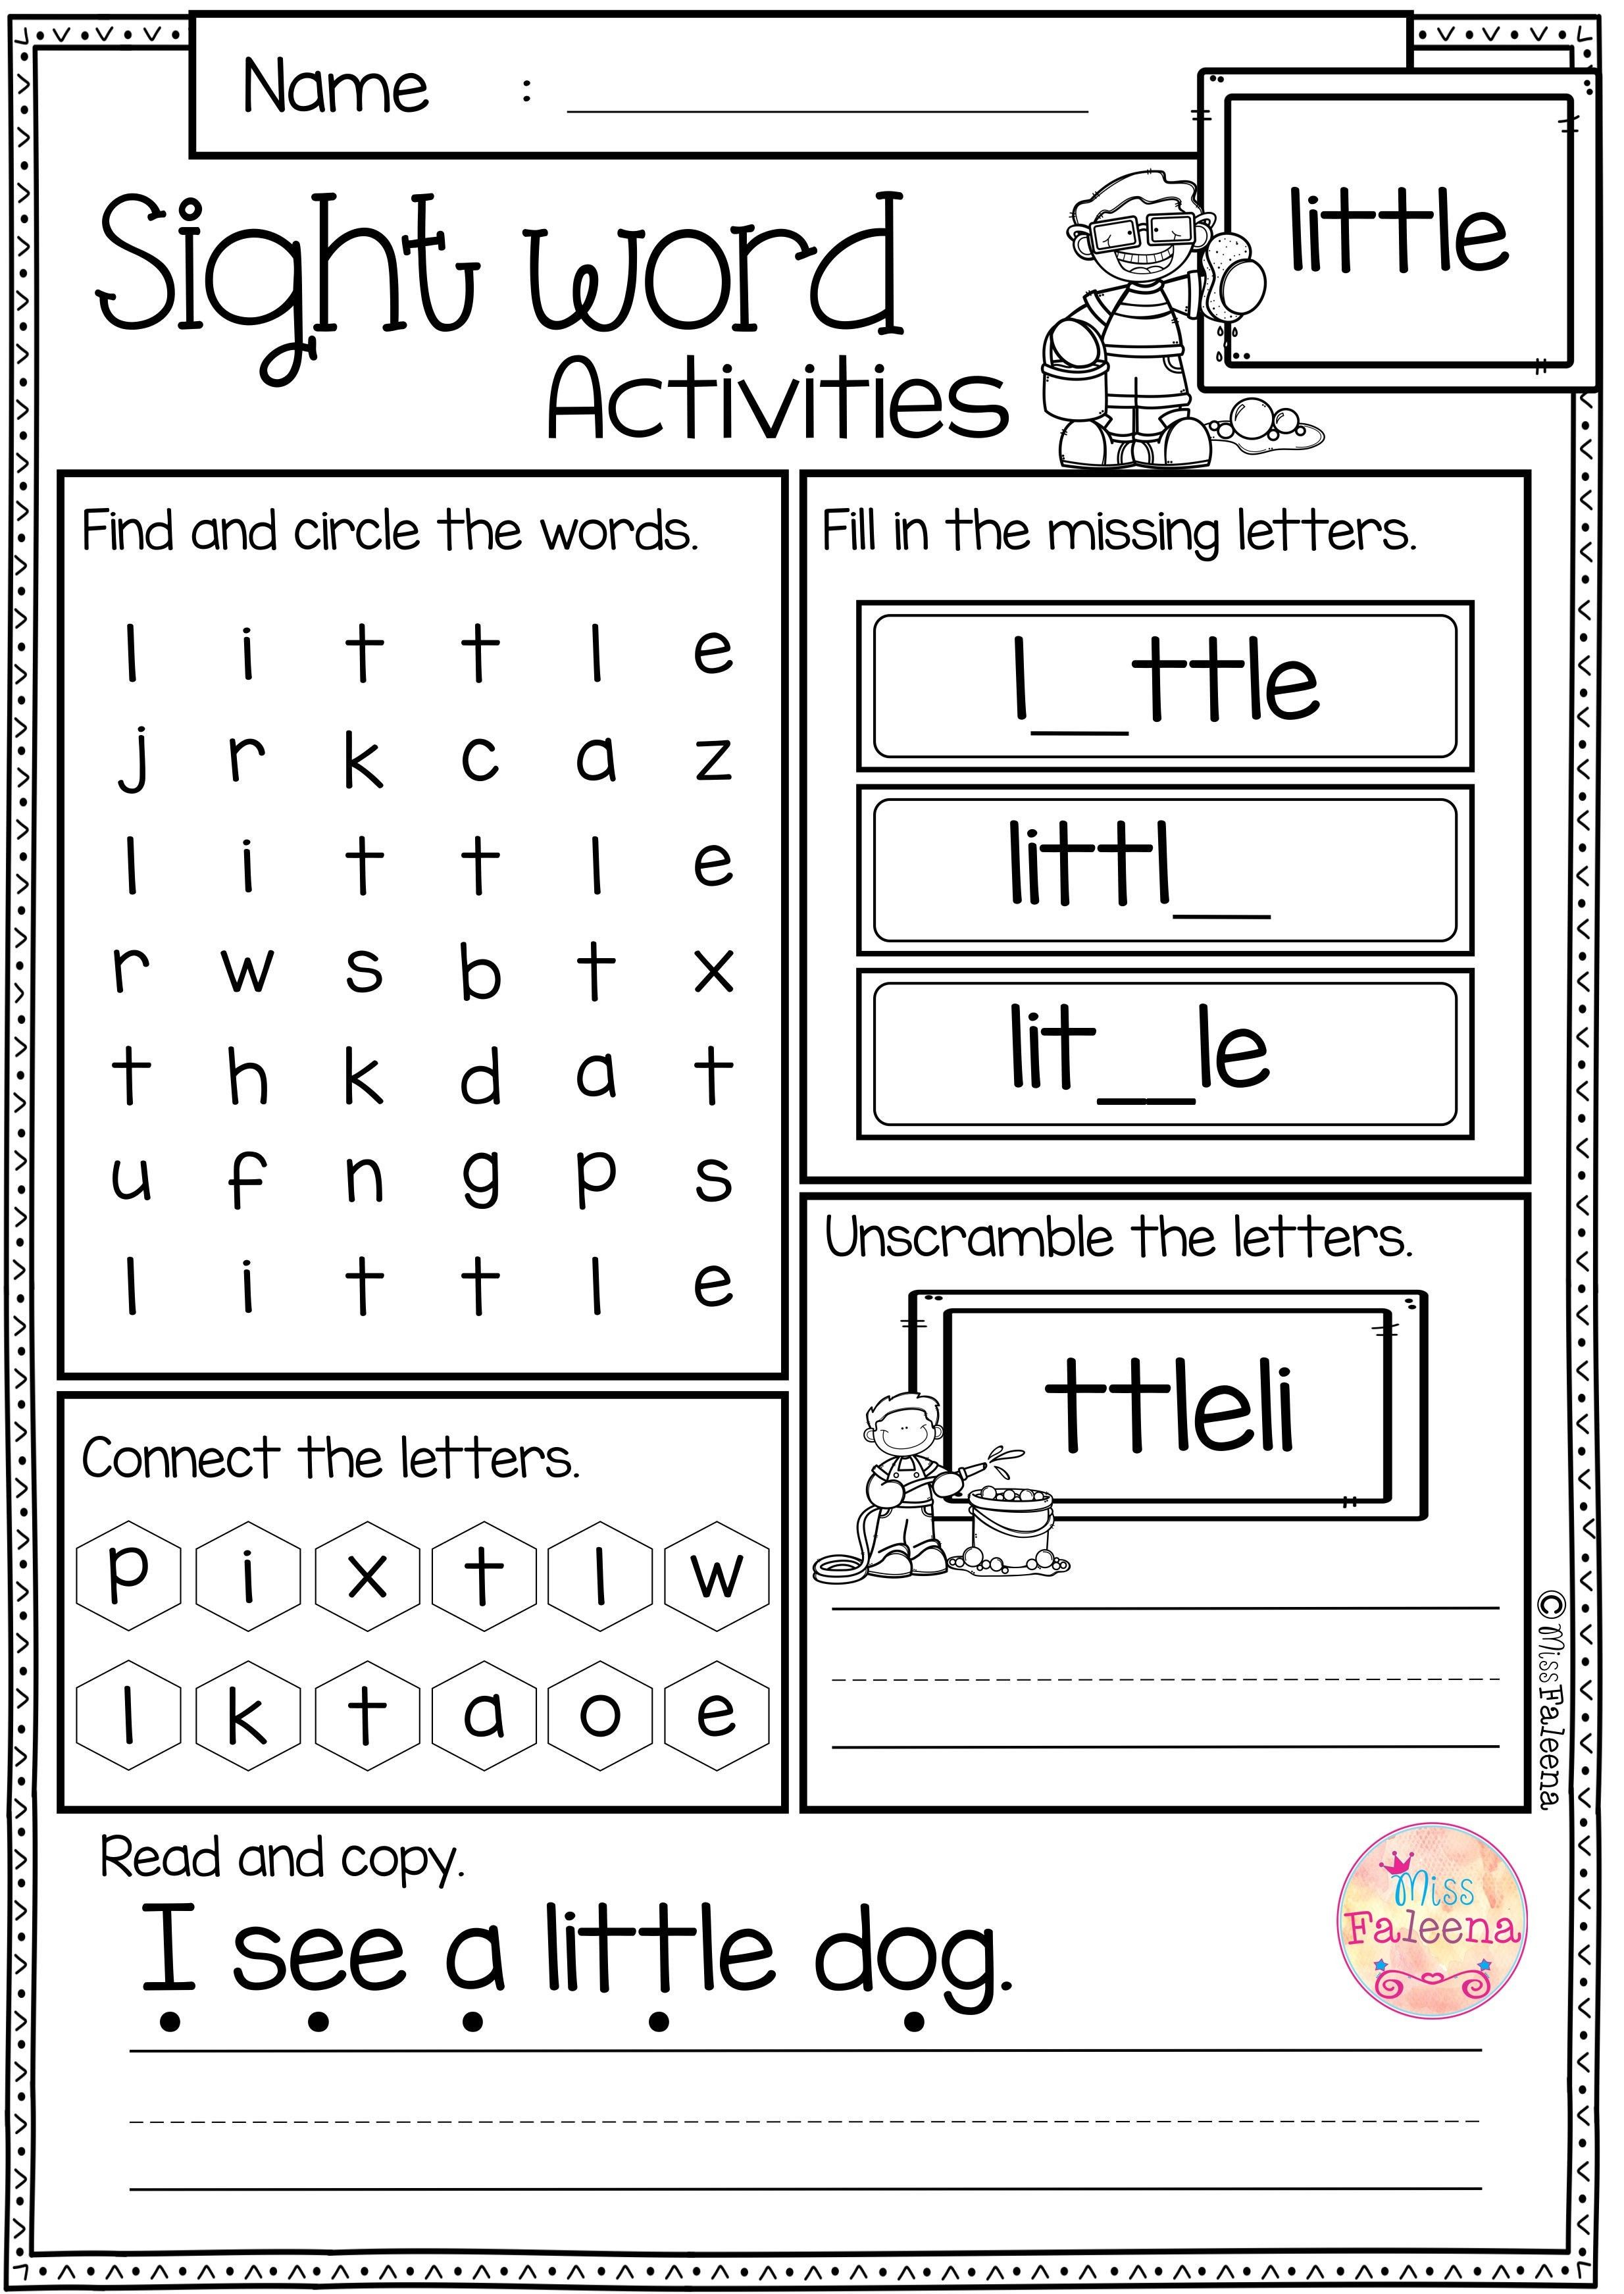 Sight Words Games Worksheet Refrence Word Pleter Missing Letter Choice Image Sight Words Kindergarten Kindergarten Worksheets Sight Words Sight Word Worksheets [ 3486 x 2468 Pixel ]